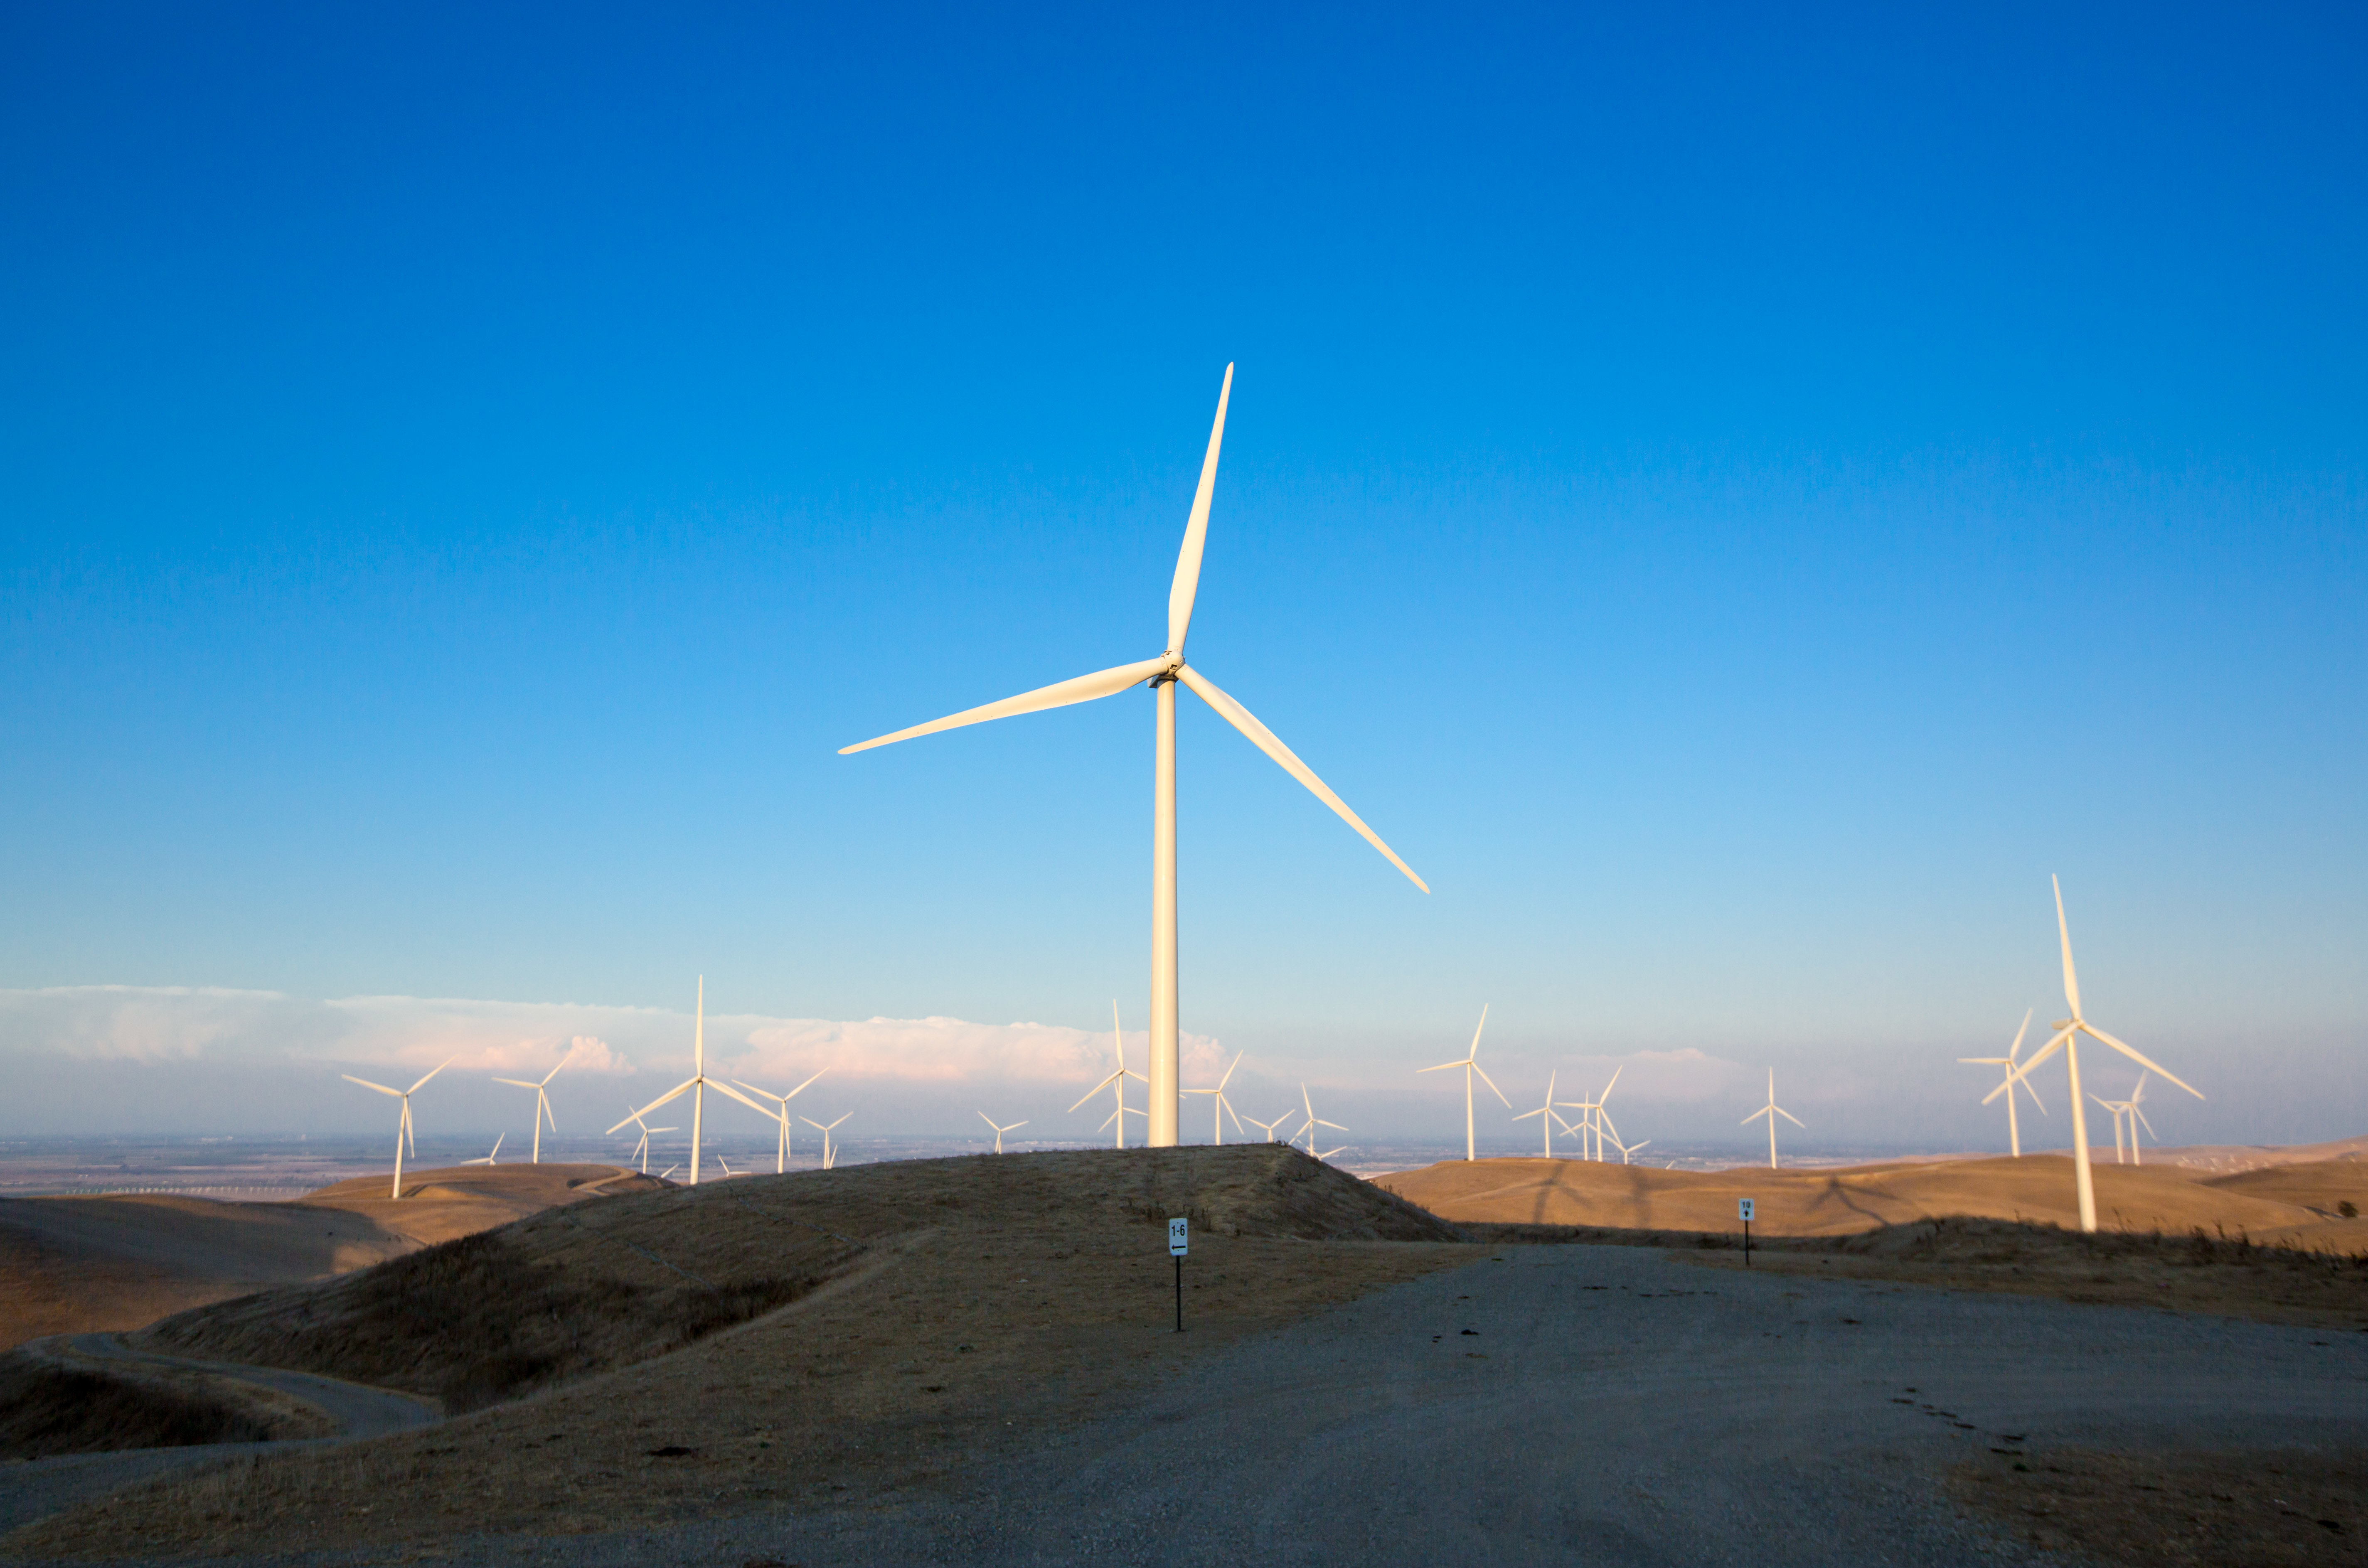 Wind farm with blue sky in the background